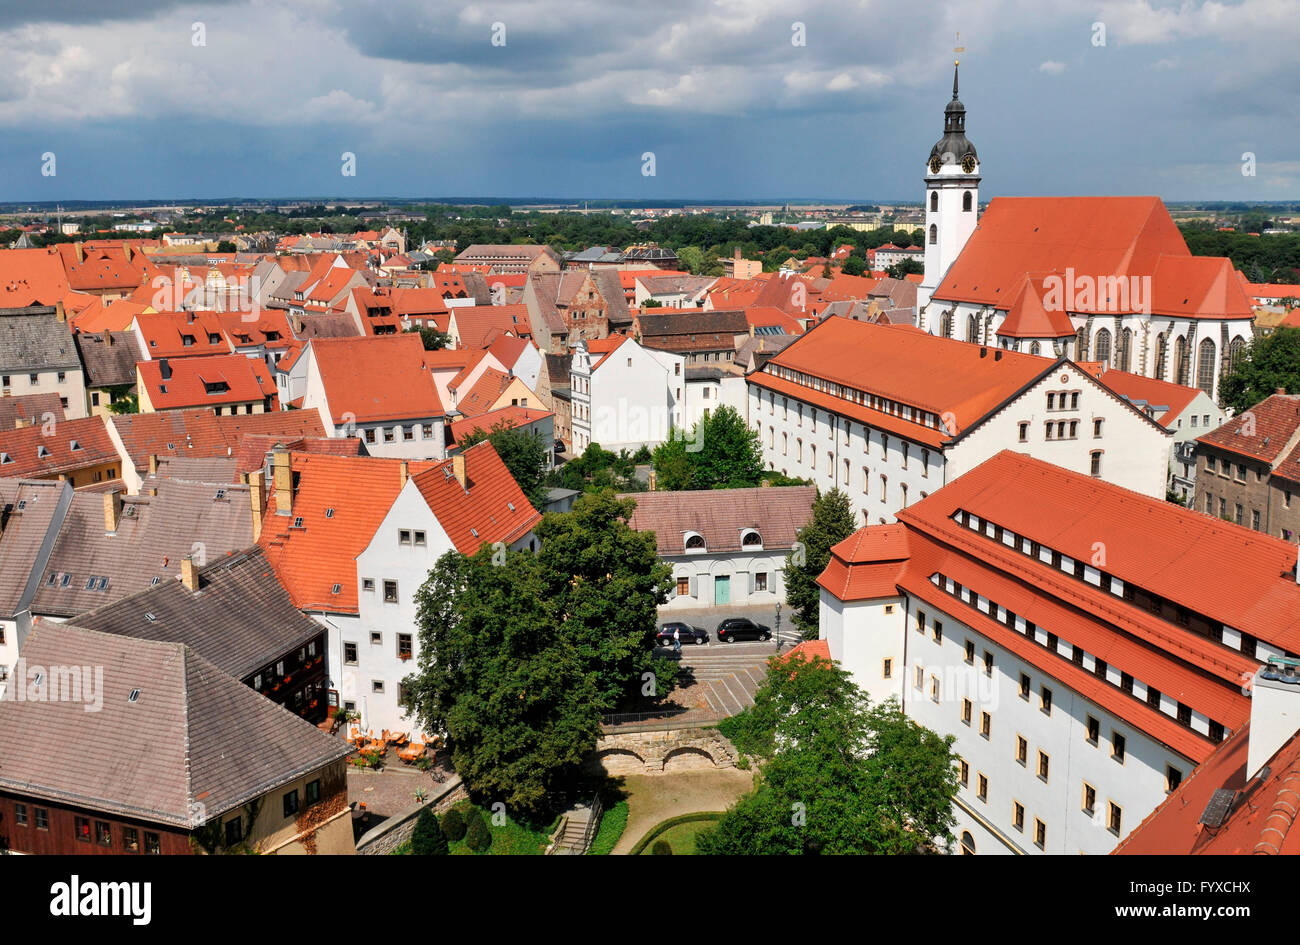 Old part of town, Torgau, Saxony, Germany Stock Photo